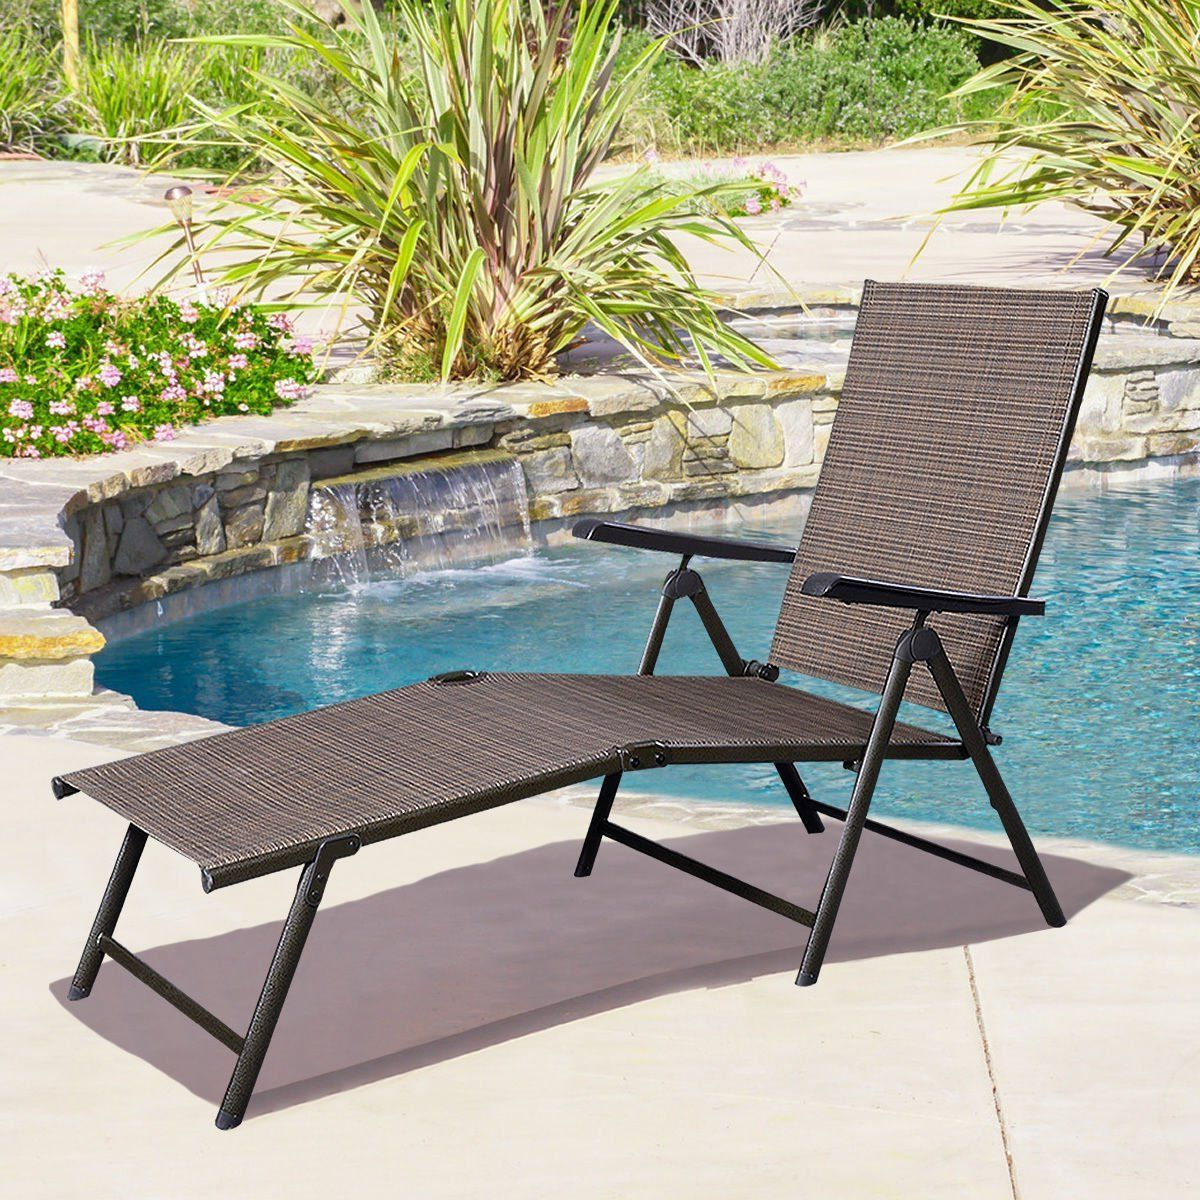 Outdoor Yard Pool Recliner Folding Lounge Table Chairs Regarding Best And Newest Adjustable Pool Chaise Lounge Chair Recliner Outdoor Patio (View 17 of 25)